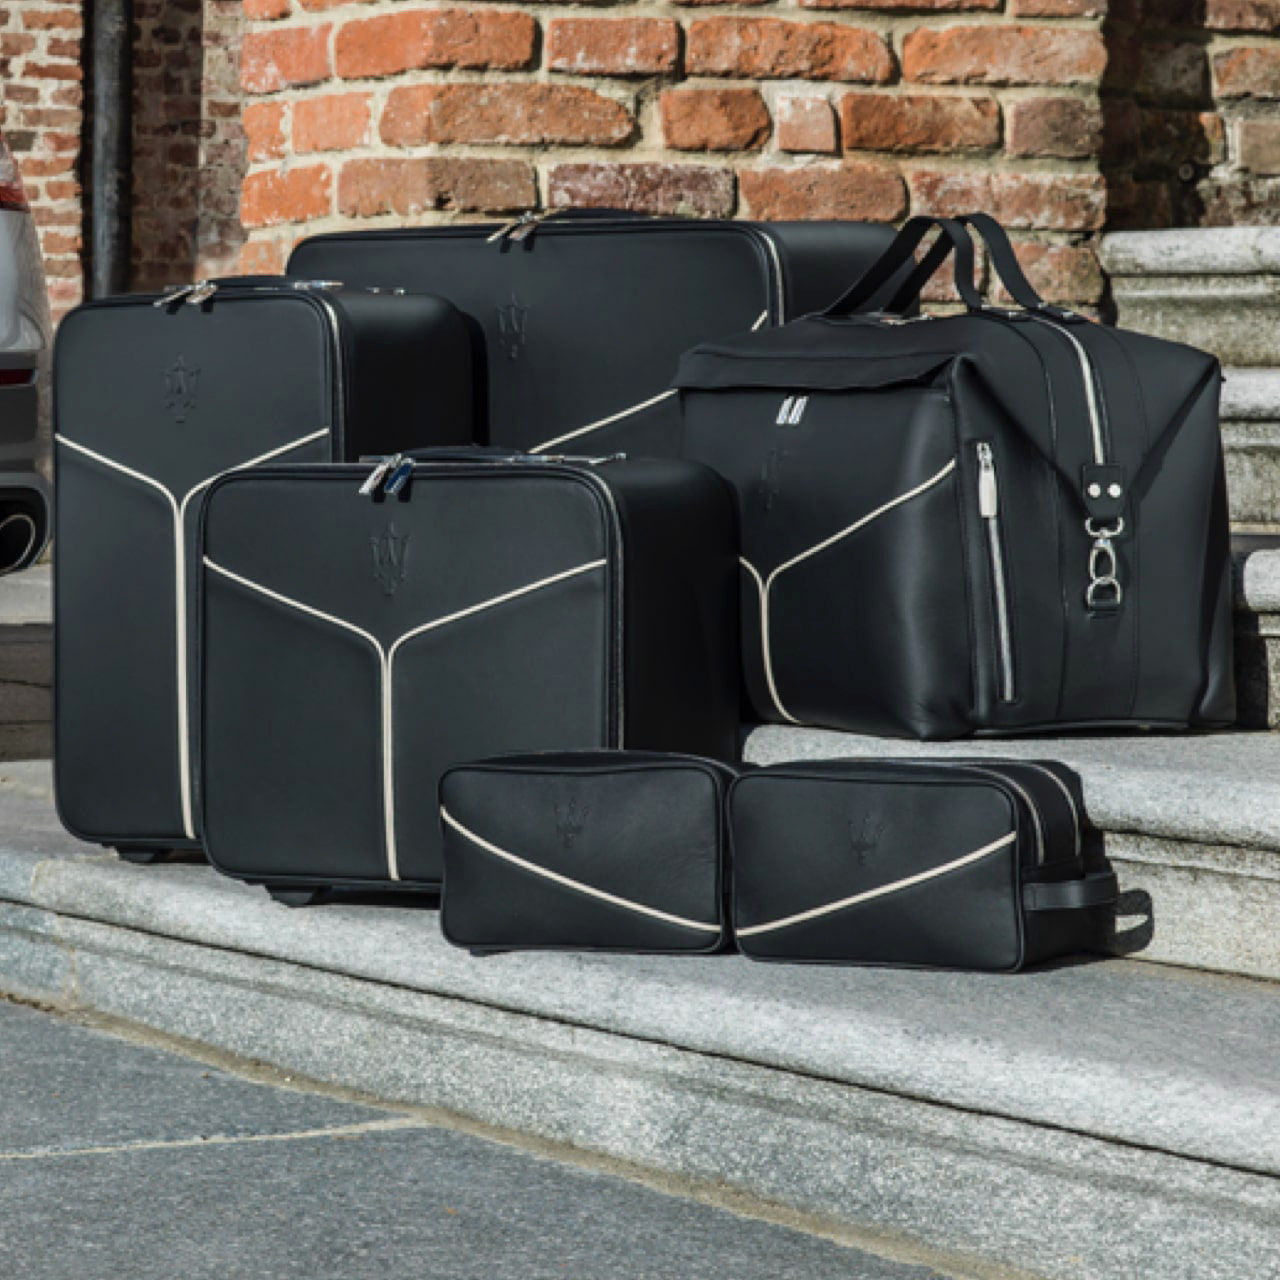 Maserati accessories and customisation -  Suitcases and bags Maserati Quattroporte